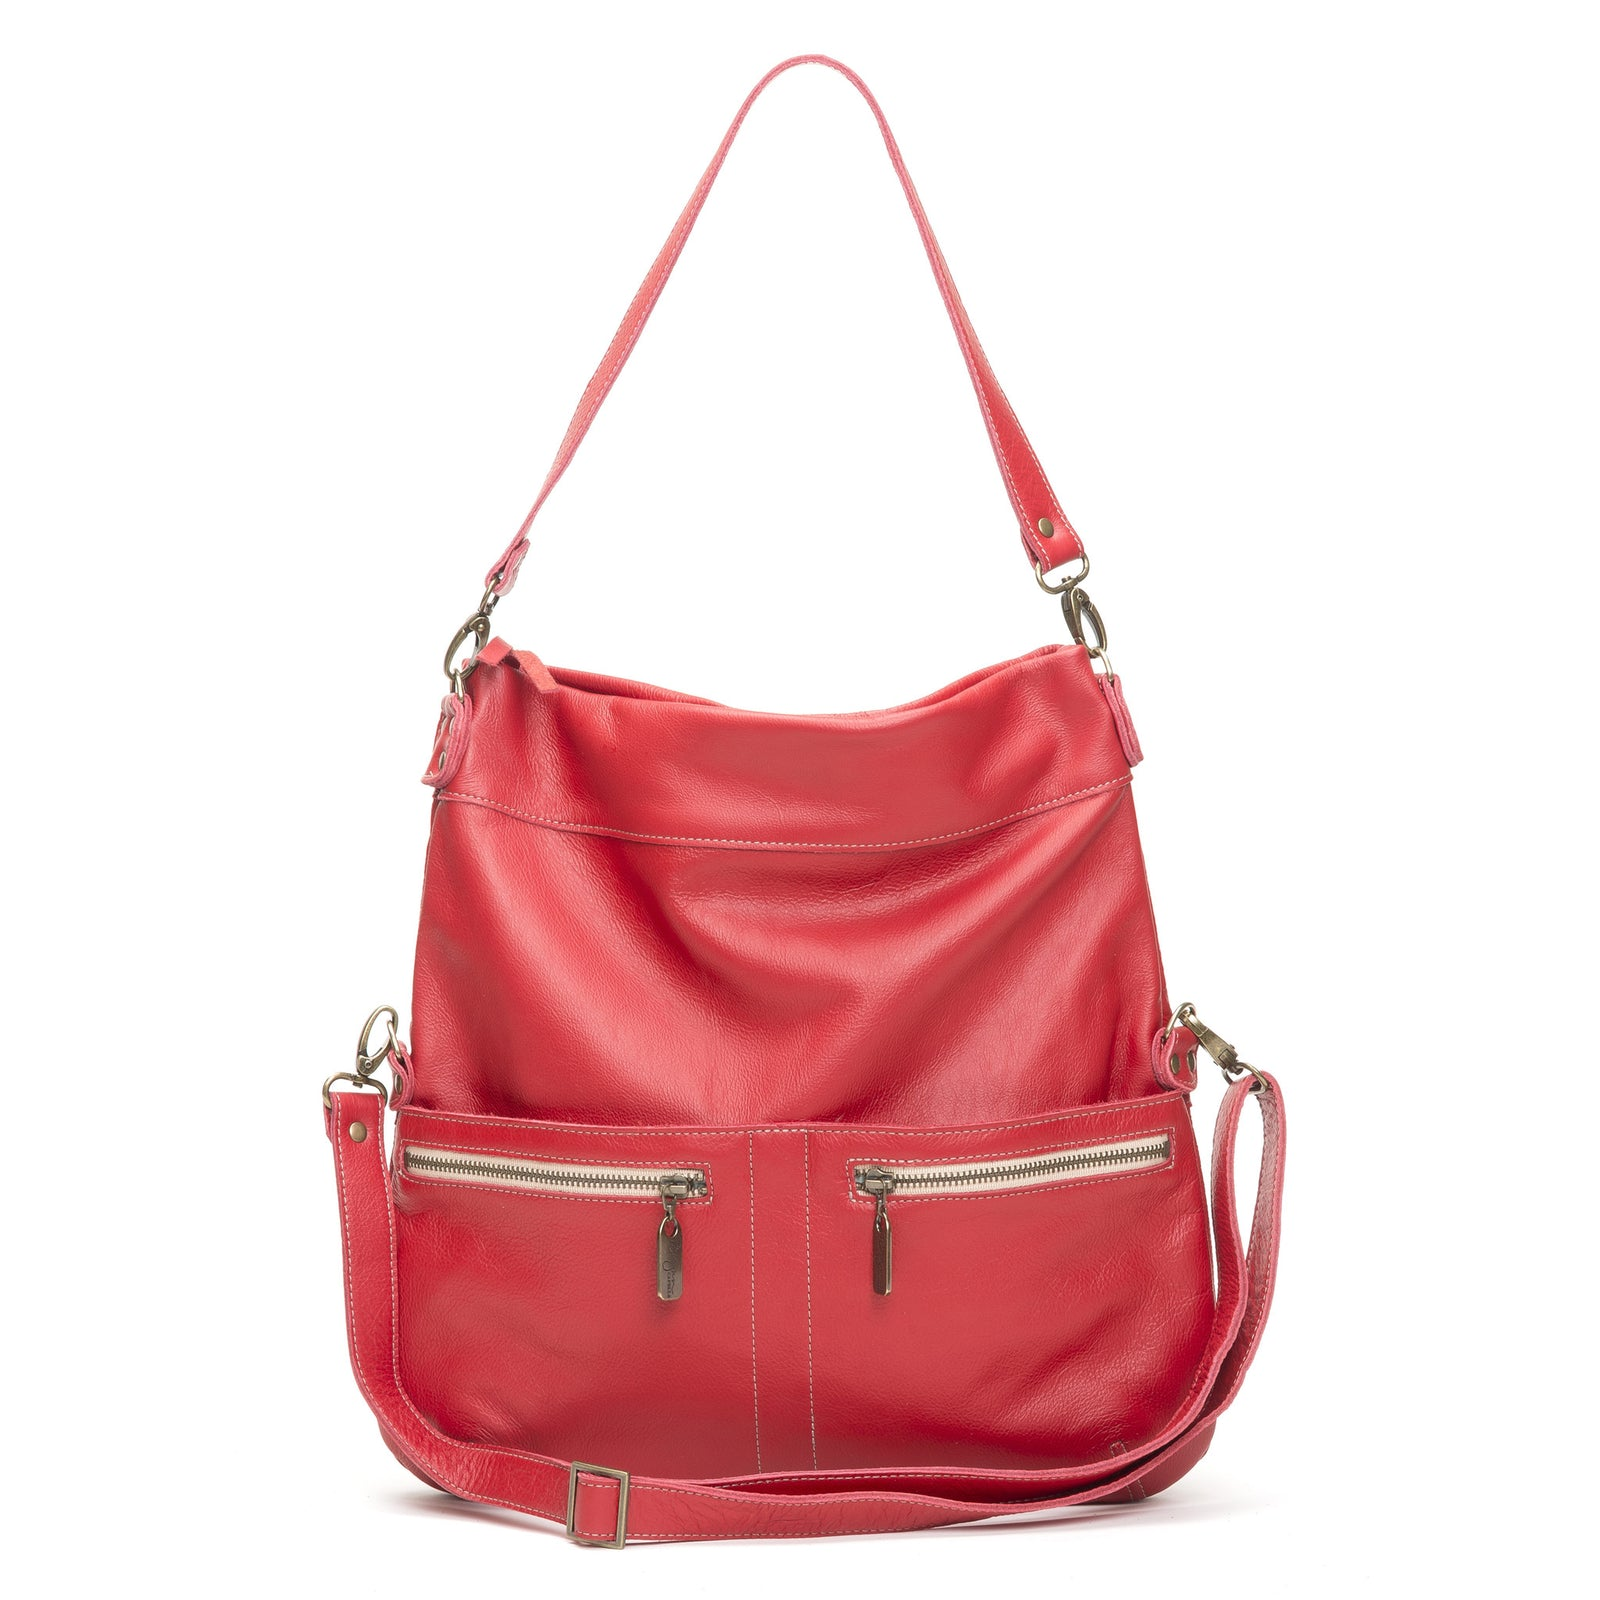 Lauren Crossbody - Cambridge - Brynn Capella, Large Crossbody